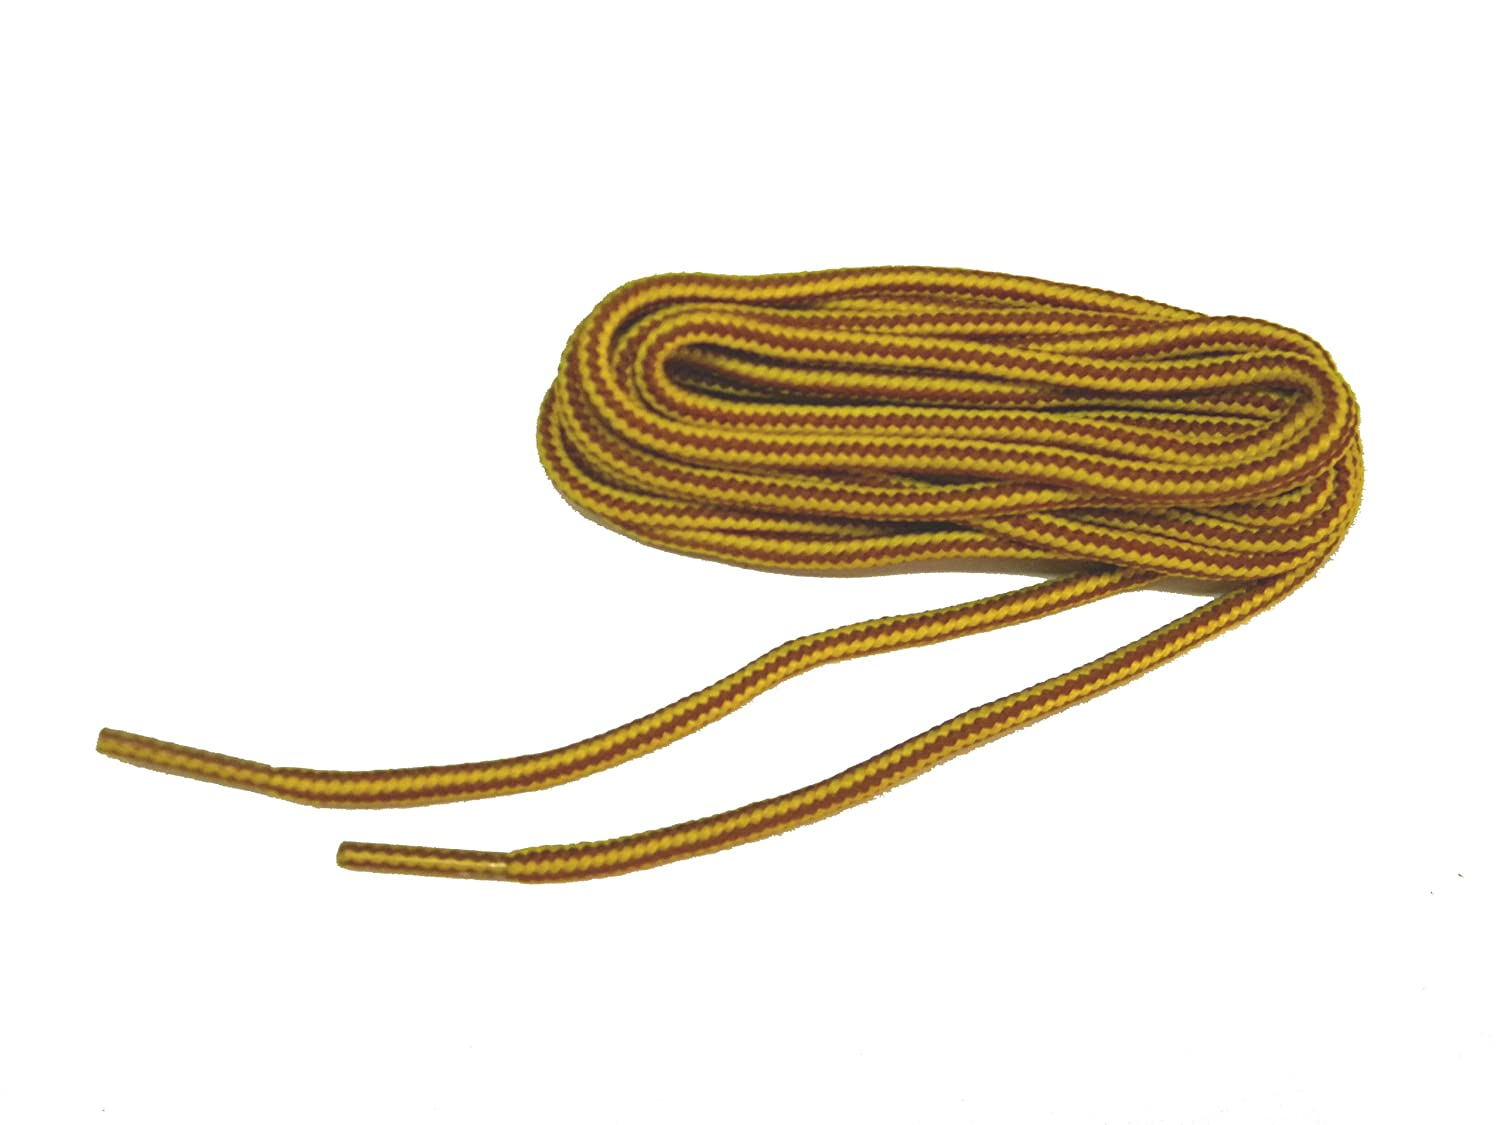 Rugged Wear proBOOT (TM) Gold - Tan Brown Boot Laces Shoelaces - 2 Pair Pack